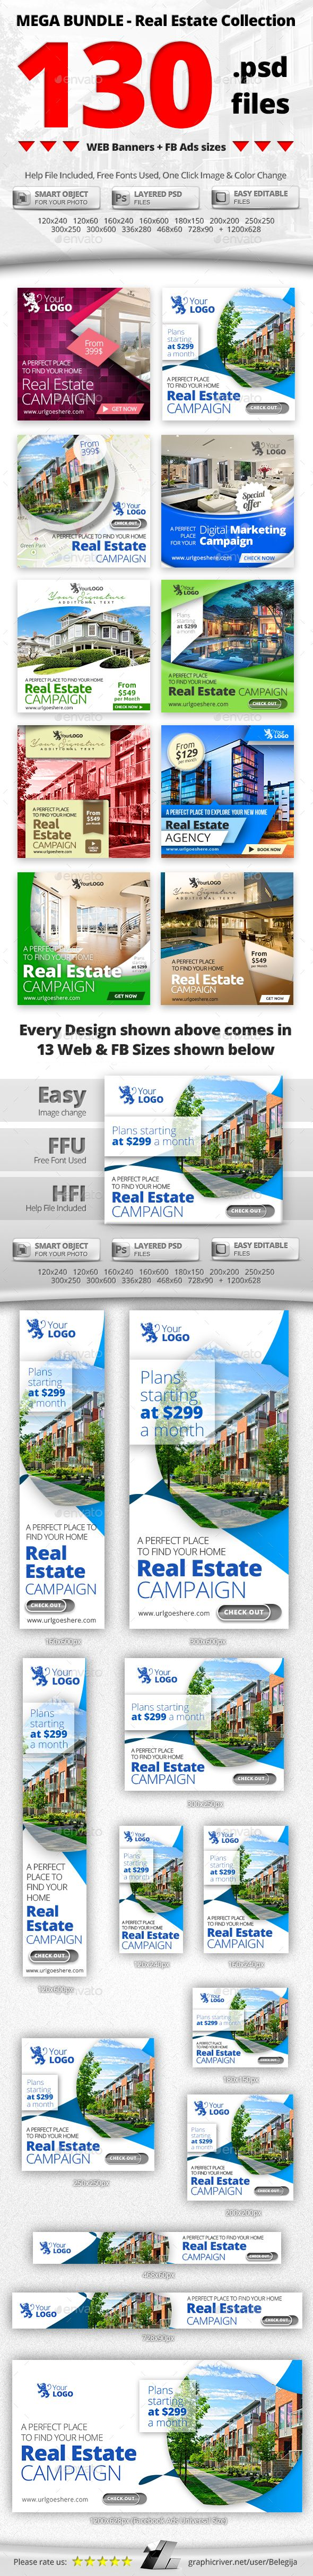 10 in 1 Real Estate Web & FB Banners - MEGA Bundle 3 - Banners & Ads Web Elements Download here : https://graphicriver.net/item/10-in-1-real-estate-web-fb-banners-mega-bundle-3/19578686?s_rank=85&ref=Al-fatih